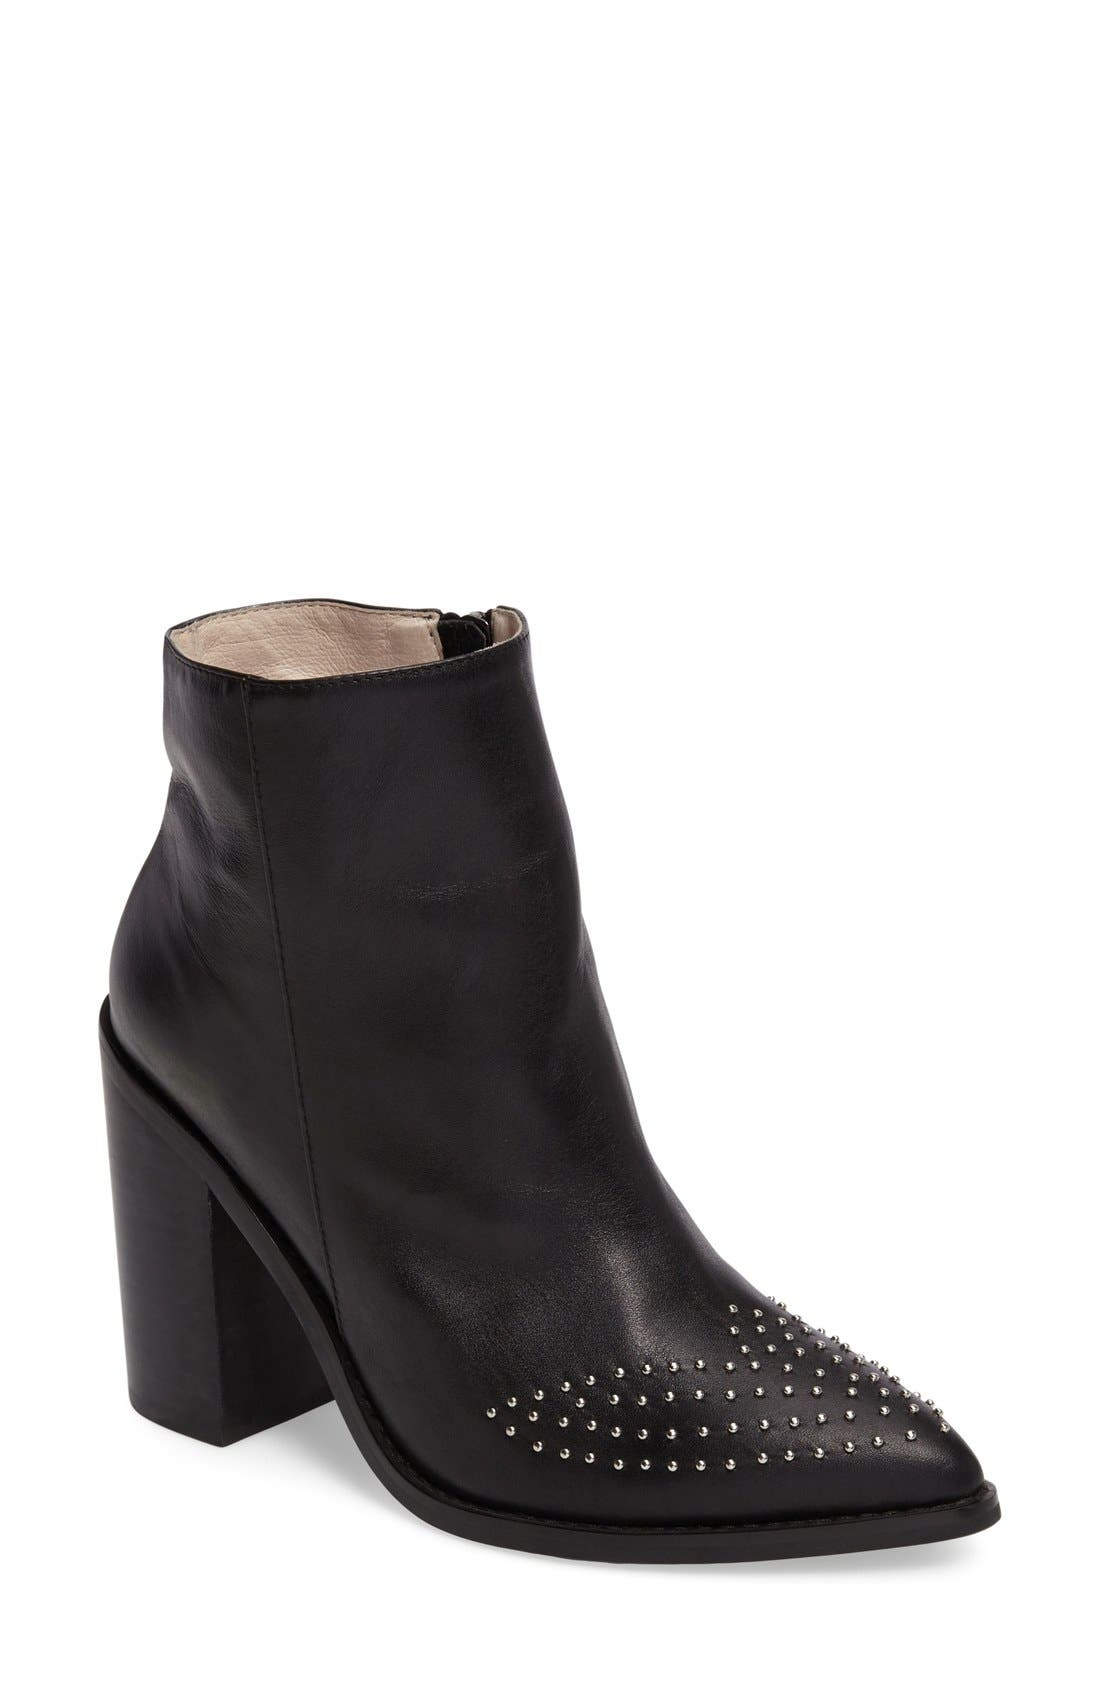 Joan Bootie,                             Main thumbnail 1, color,                             Black Leather